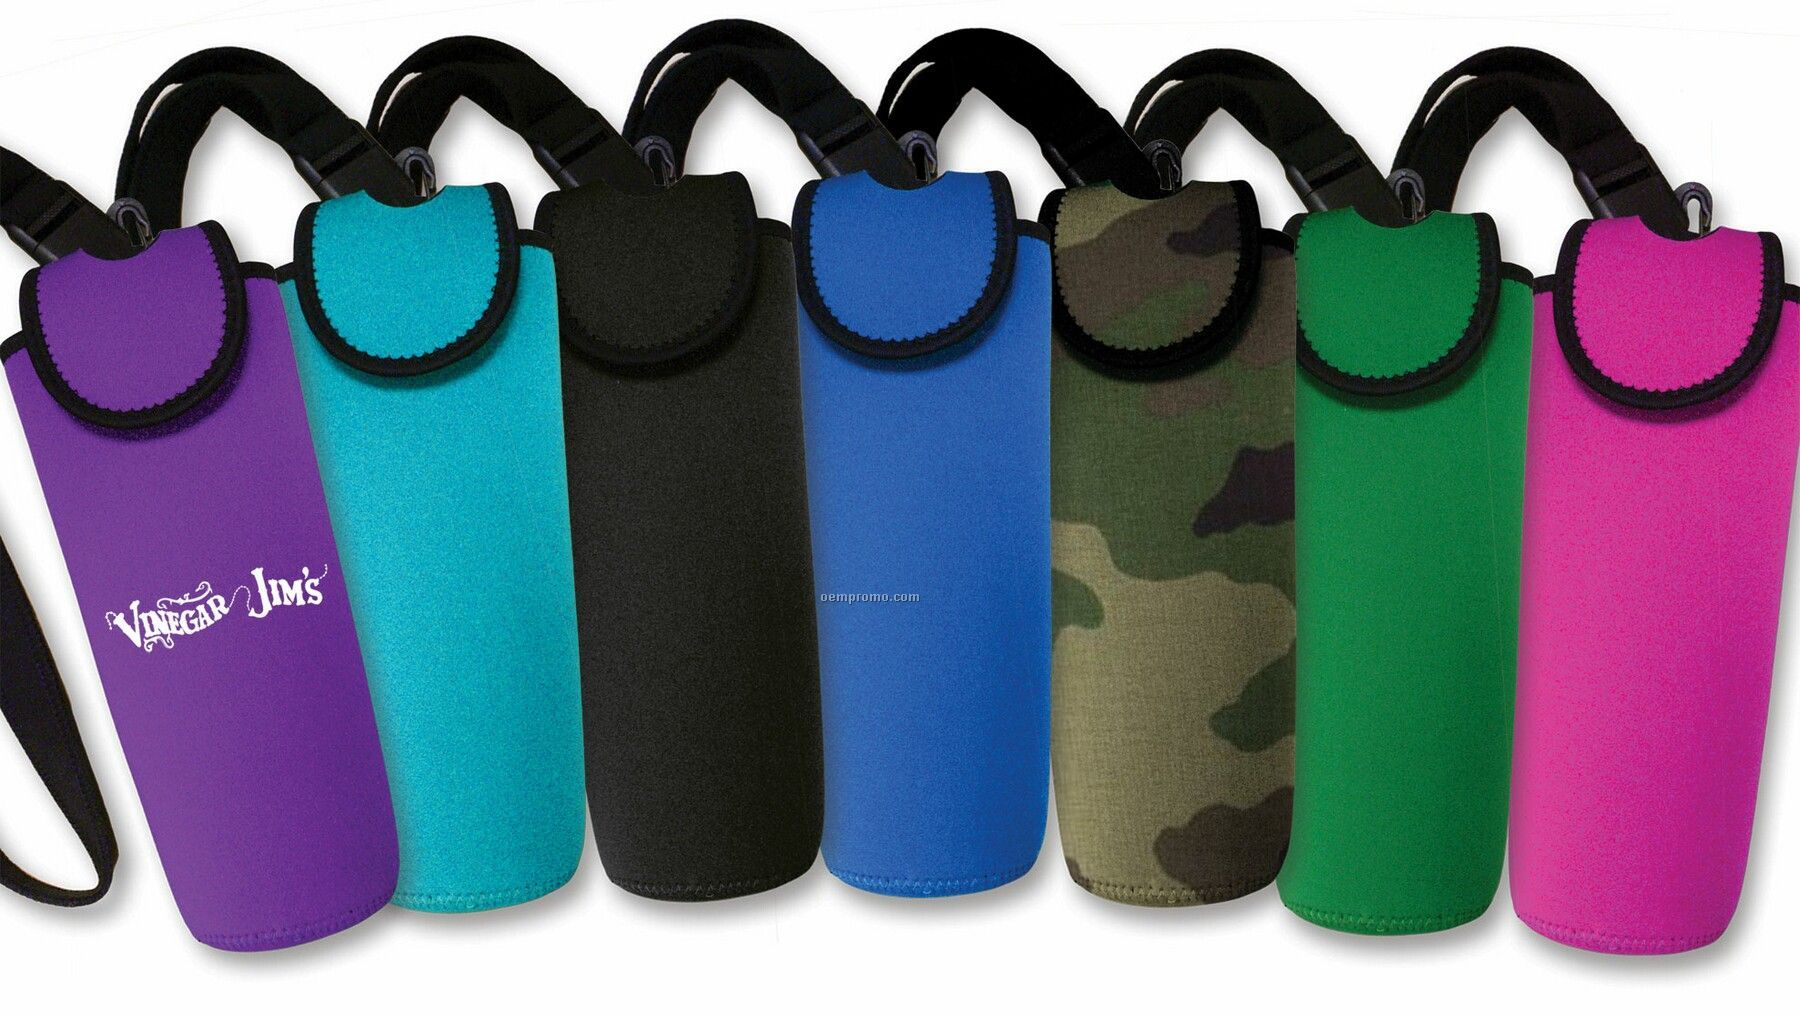 Neoprene Water Bottle Insulator - Large